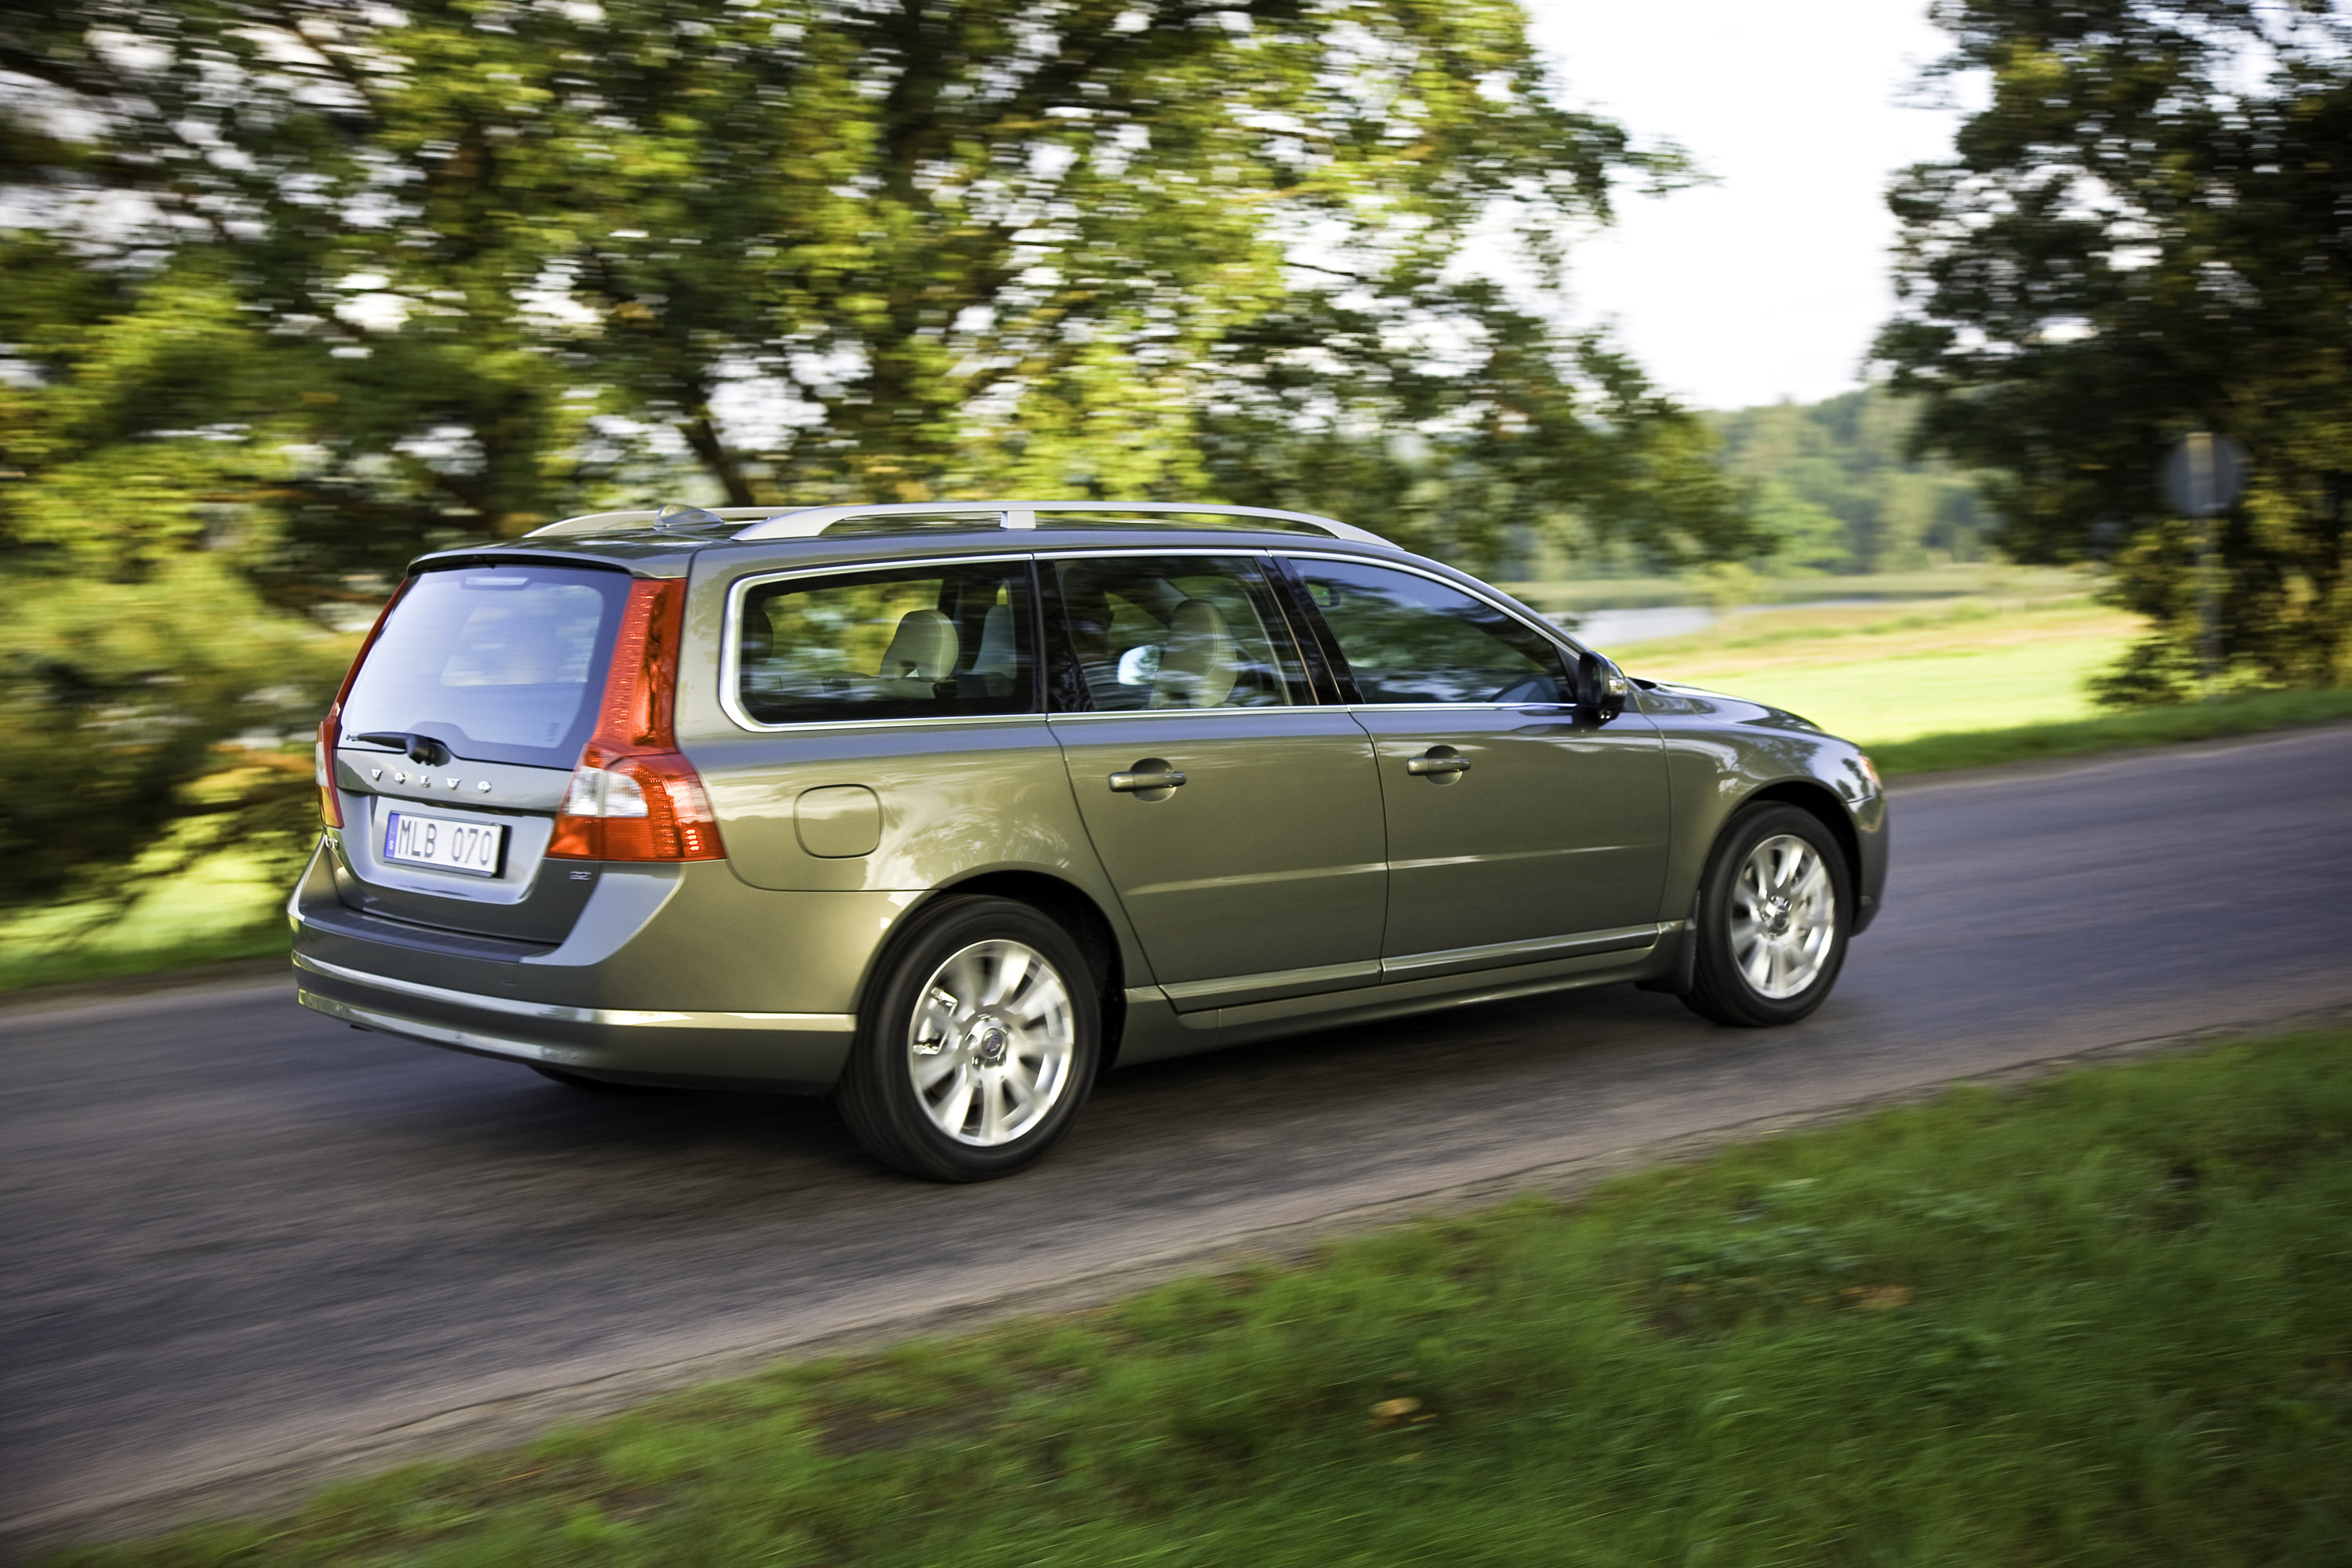 2010 volvo v70 picture 21294. Black Bedroom Furniture Sets. Home Design Ideas